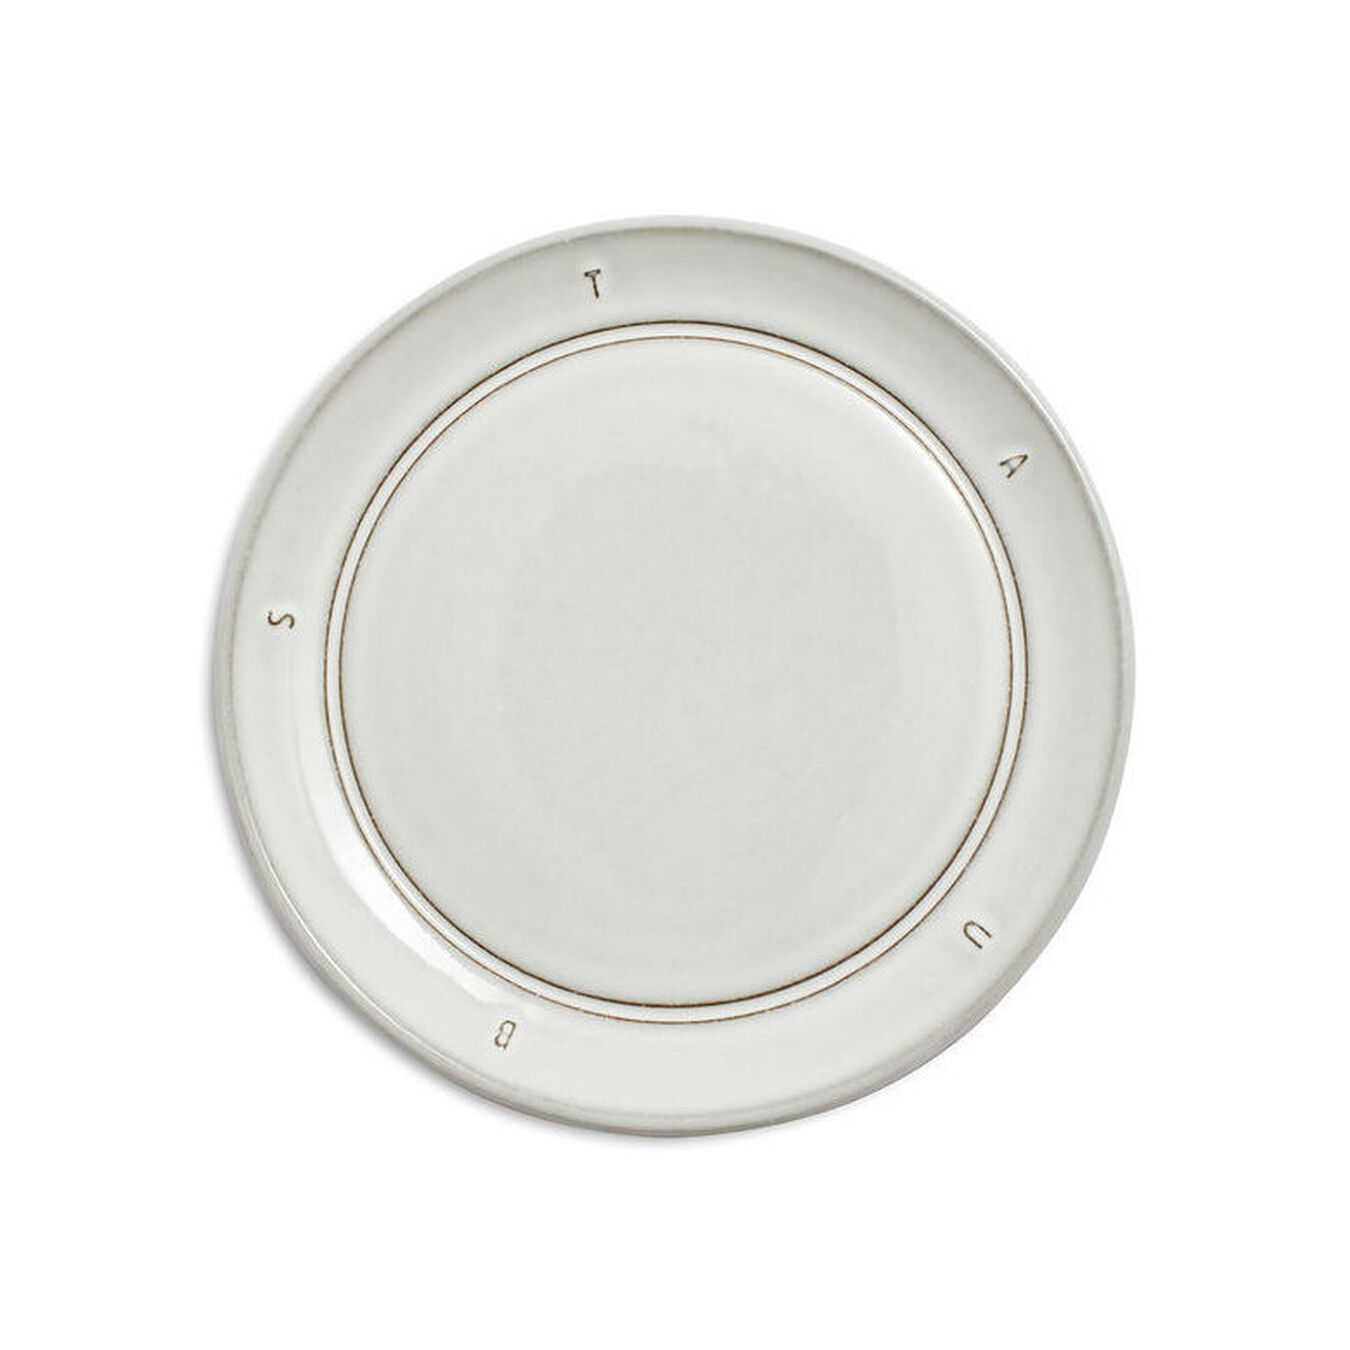 """6-inch, Appetizer Plate 15cm / 6"""" - Off White , Off-White,,large 1"""